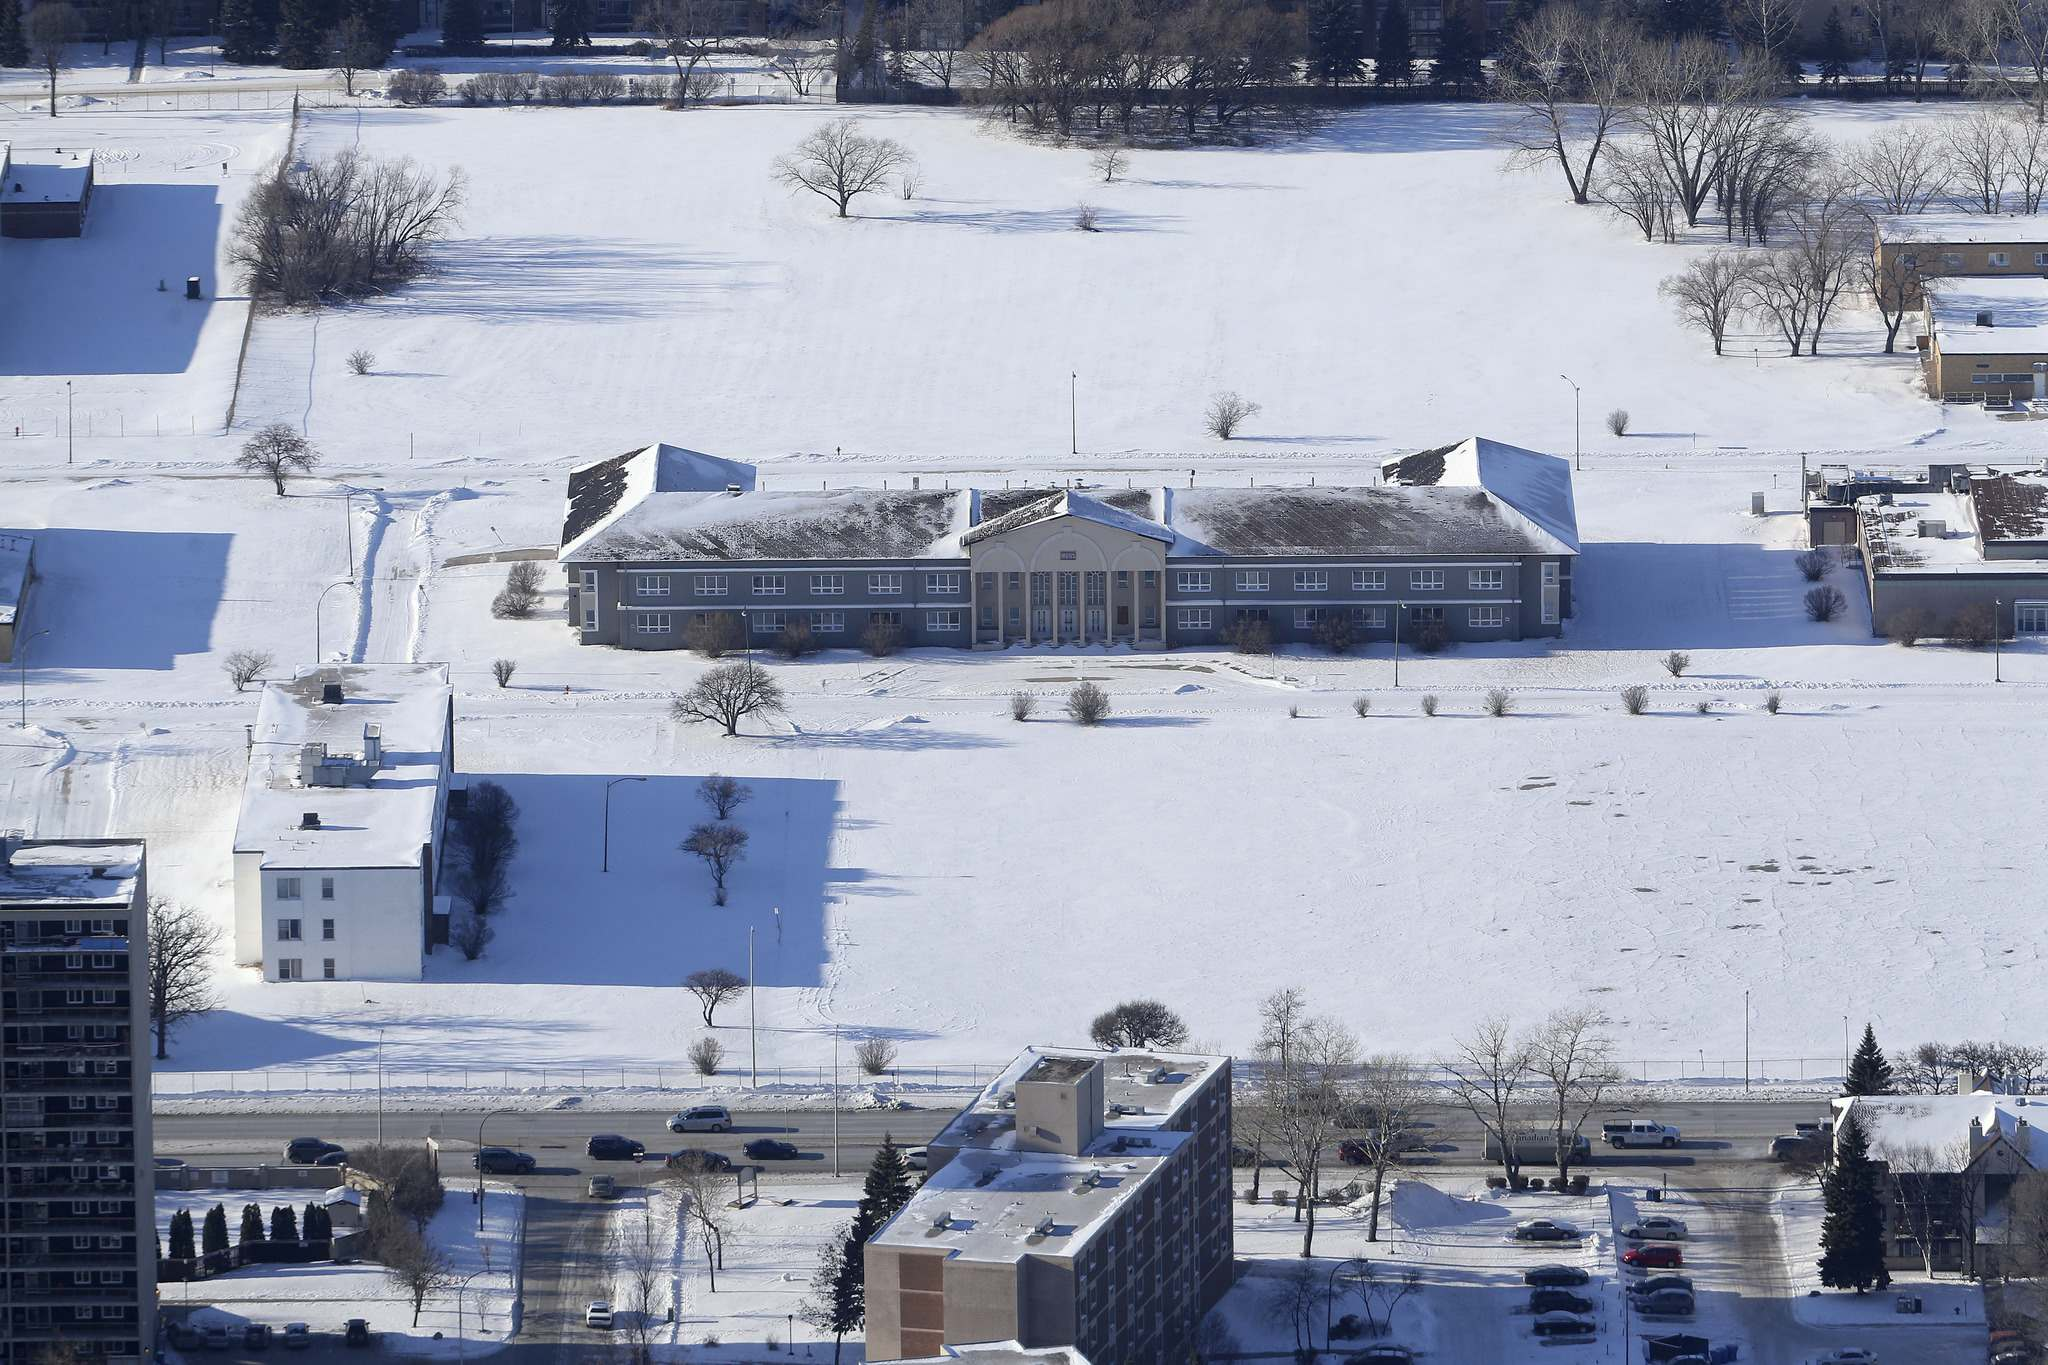 TREVOR HAGAN / WINNIPEG FREE PRESS FILES</p><p>'The next milestone' for Kapyong Barracks will be revealed Wednesday when Defence Minister Harjit Sajjan visits Winnipeg, the minister has said.</p>